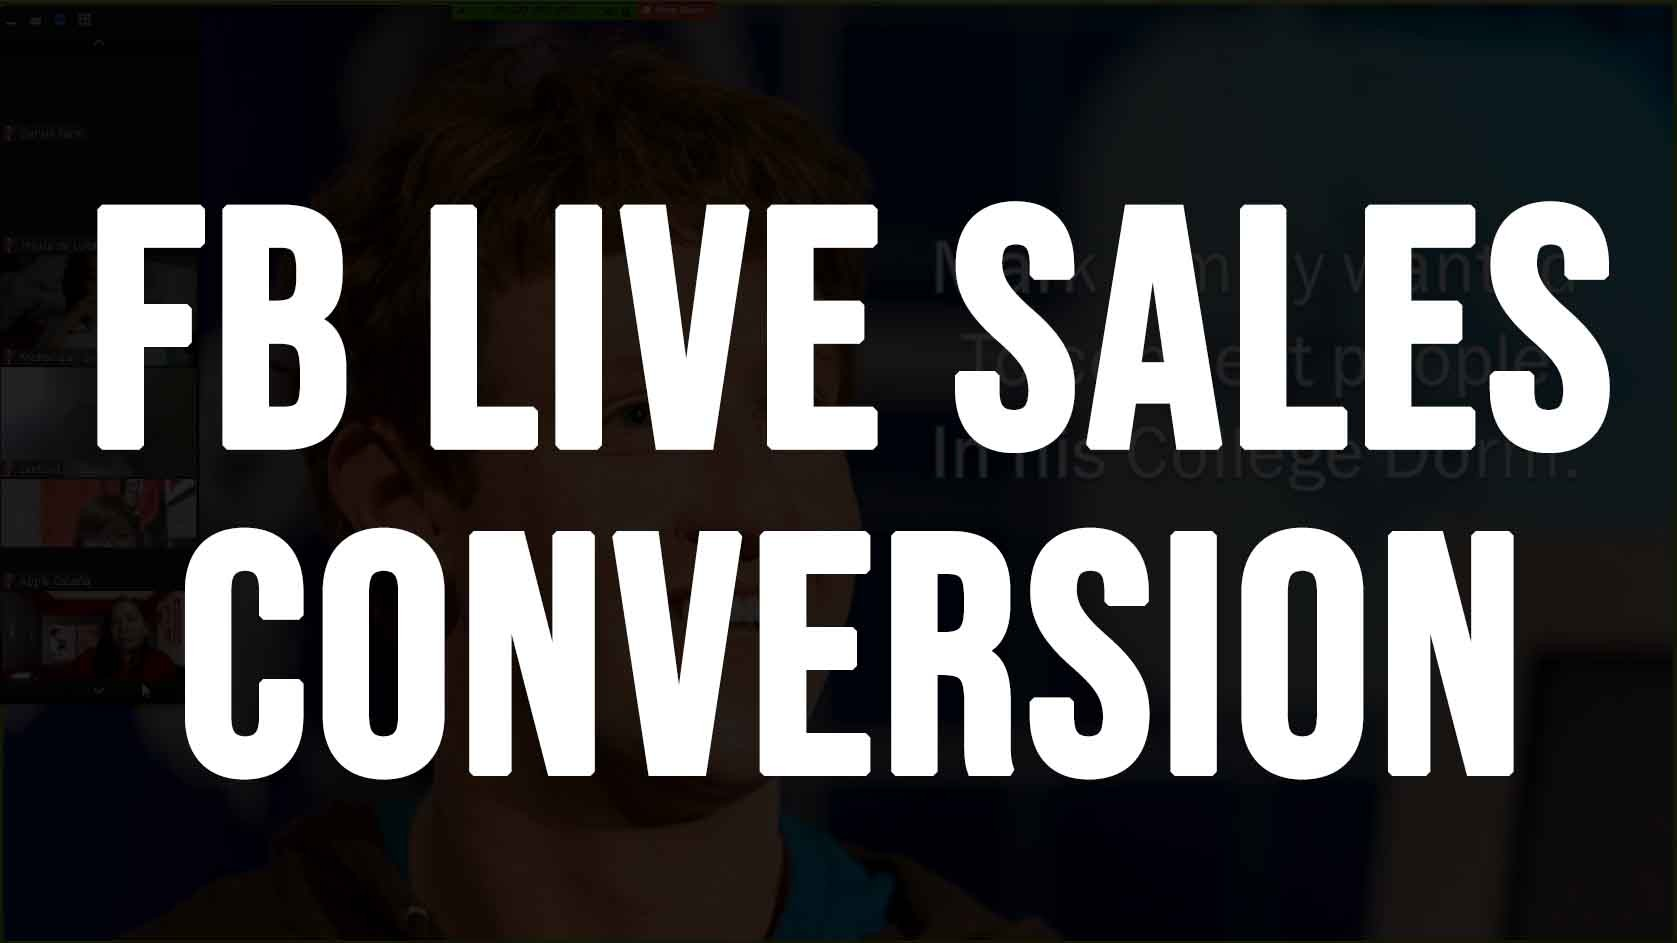 FACEBOOK SALES CONVERSION